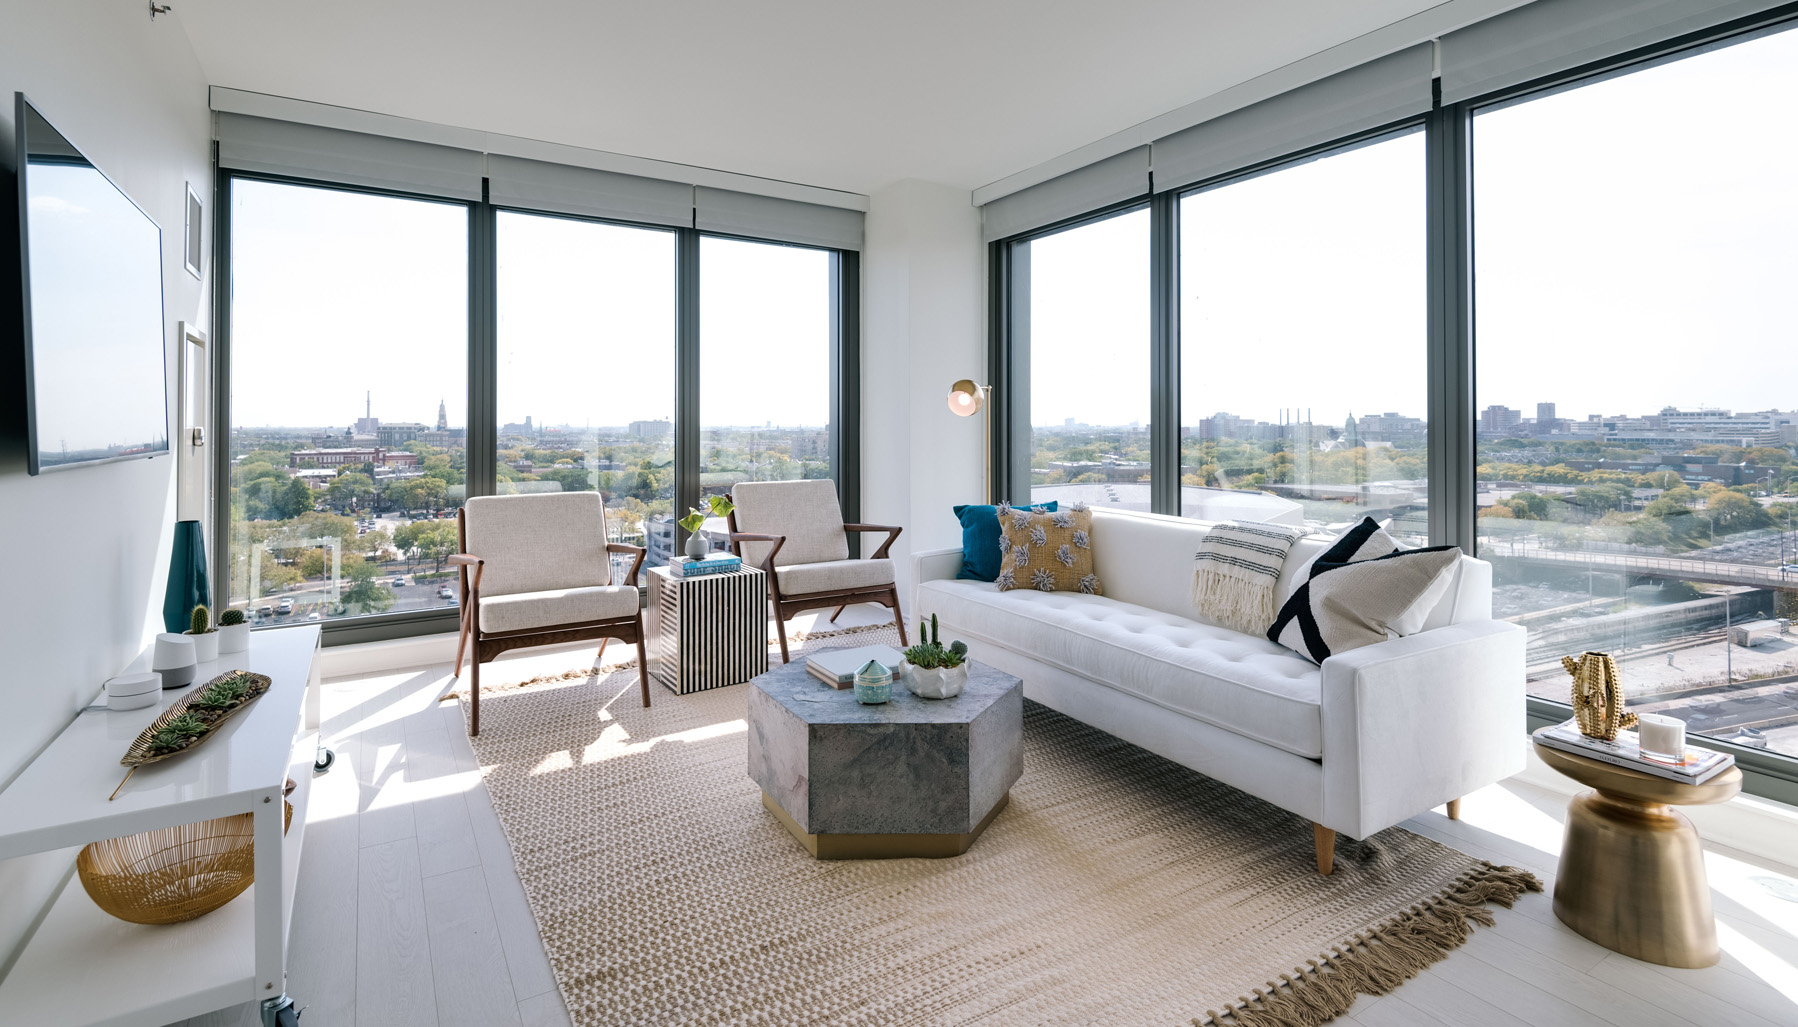 Condo decorating ideas for your living room chicago luxury condos for sale luxury living chicago realty